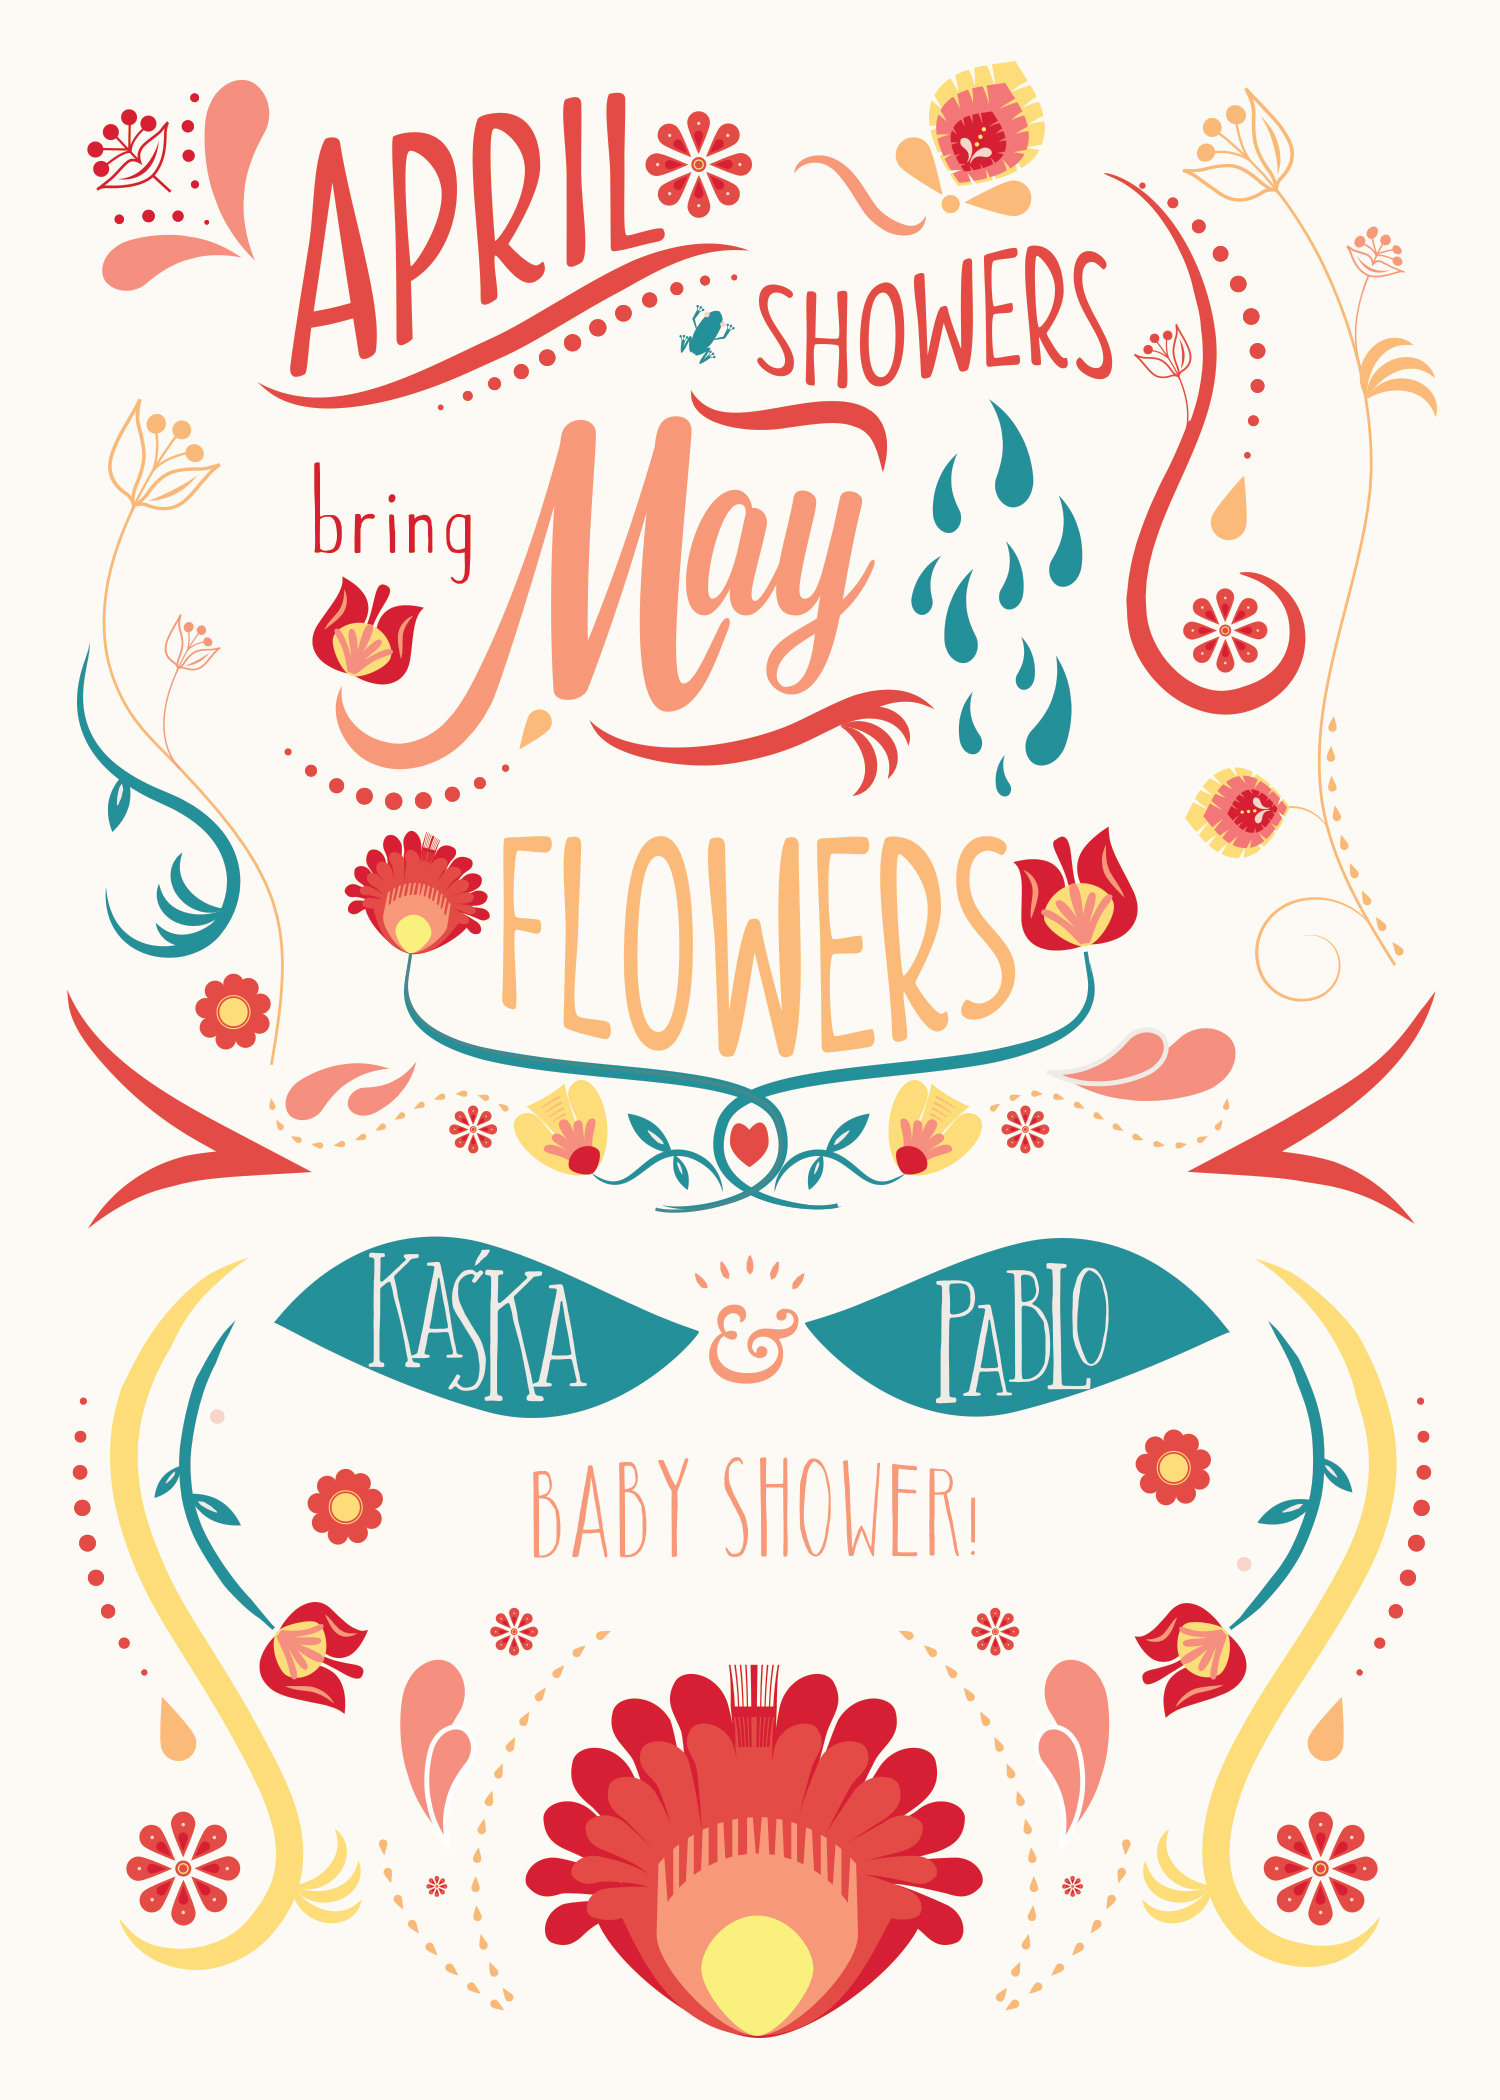 April Showers Bring May Flowers   liannierios.com